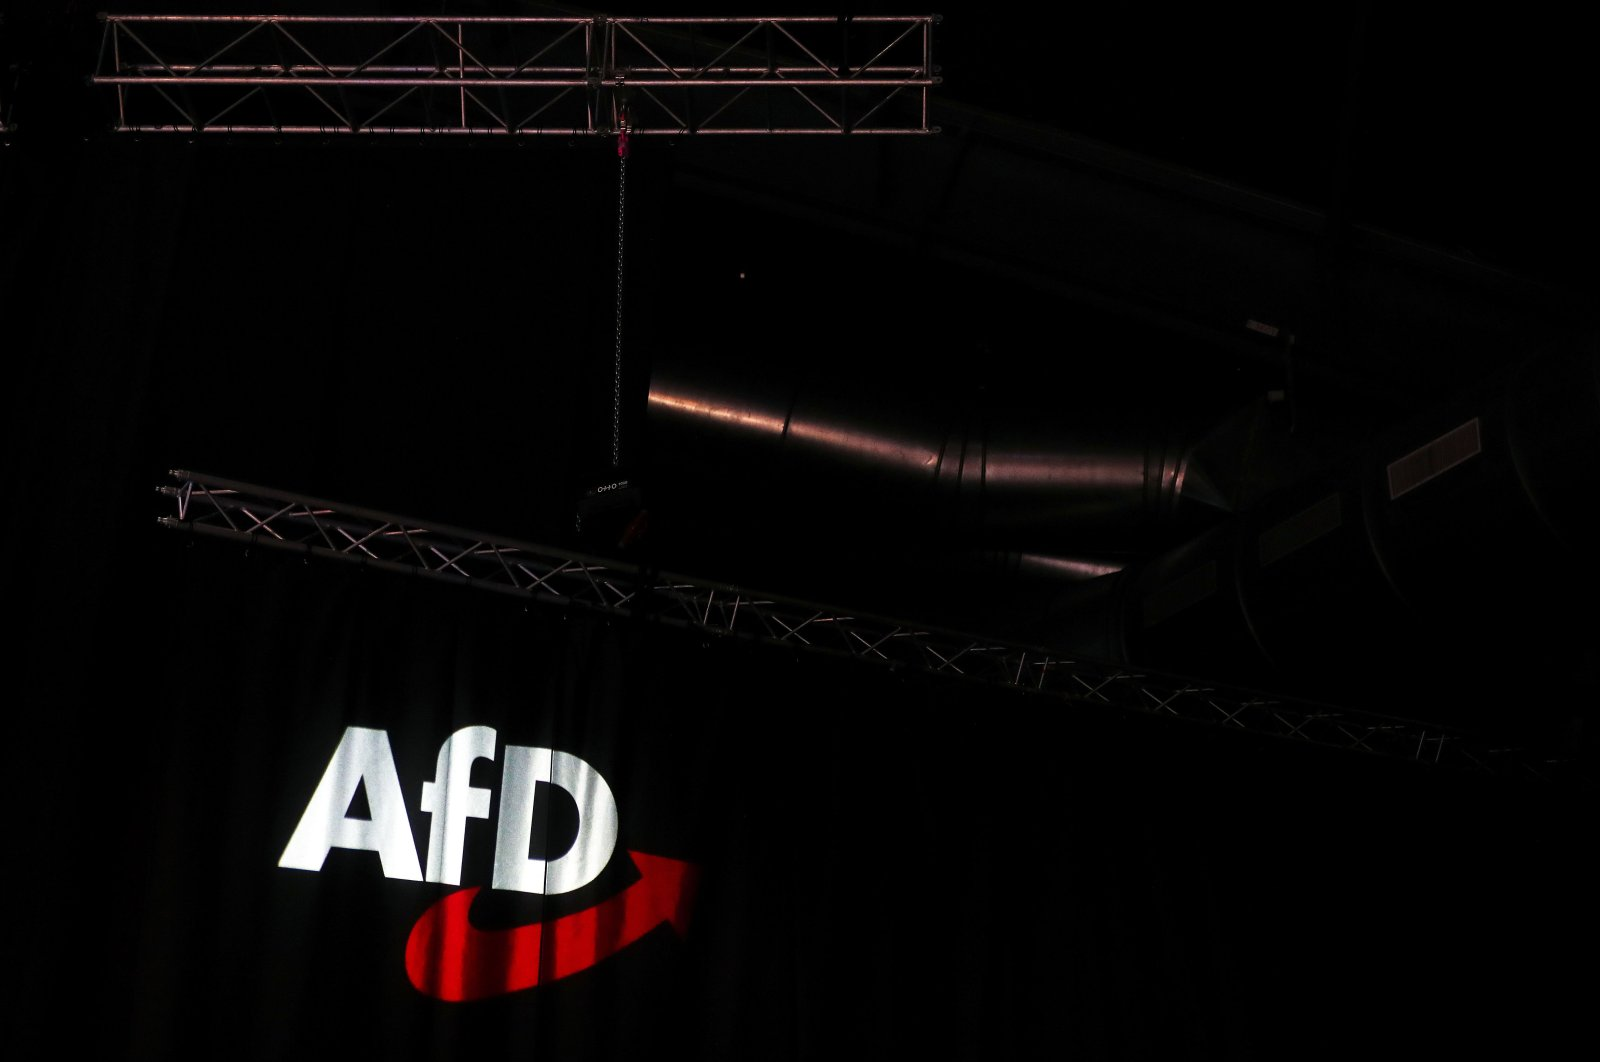 This Nov. 30, 2019, file photo shows the logo of the Alternative for Germany (AfD) far-right party during its congress in Braunschweig, Germany. (AFP Photo)